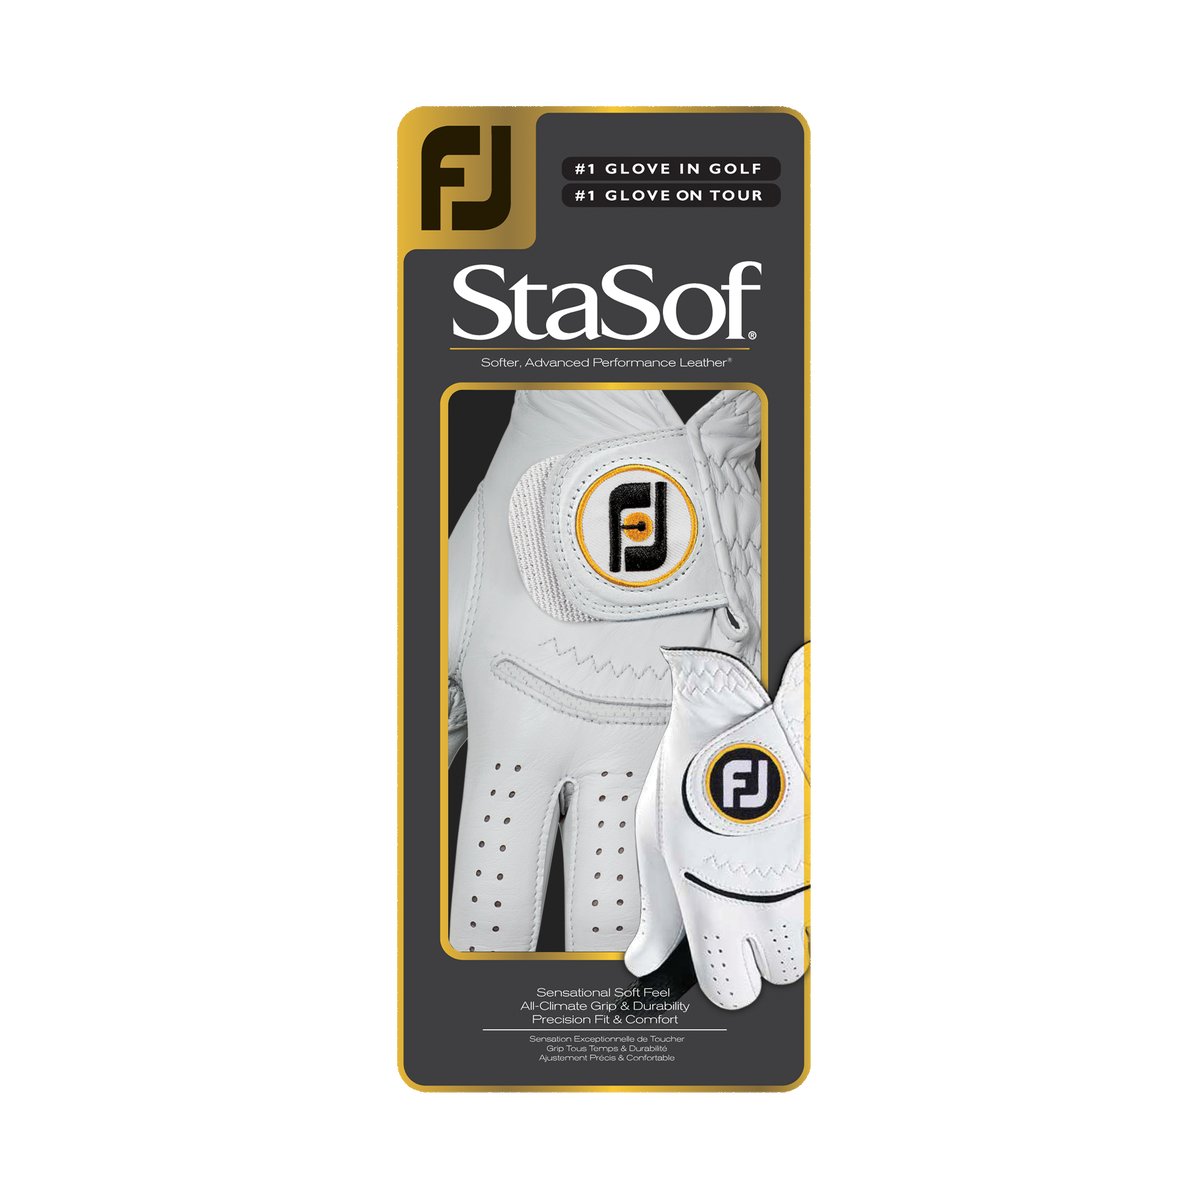 StaSof Heritage Limited Edition